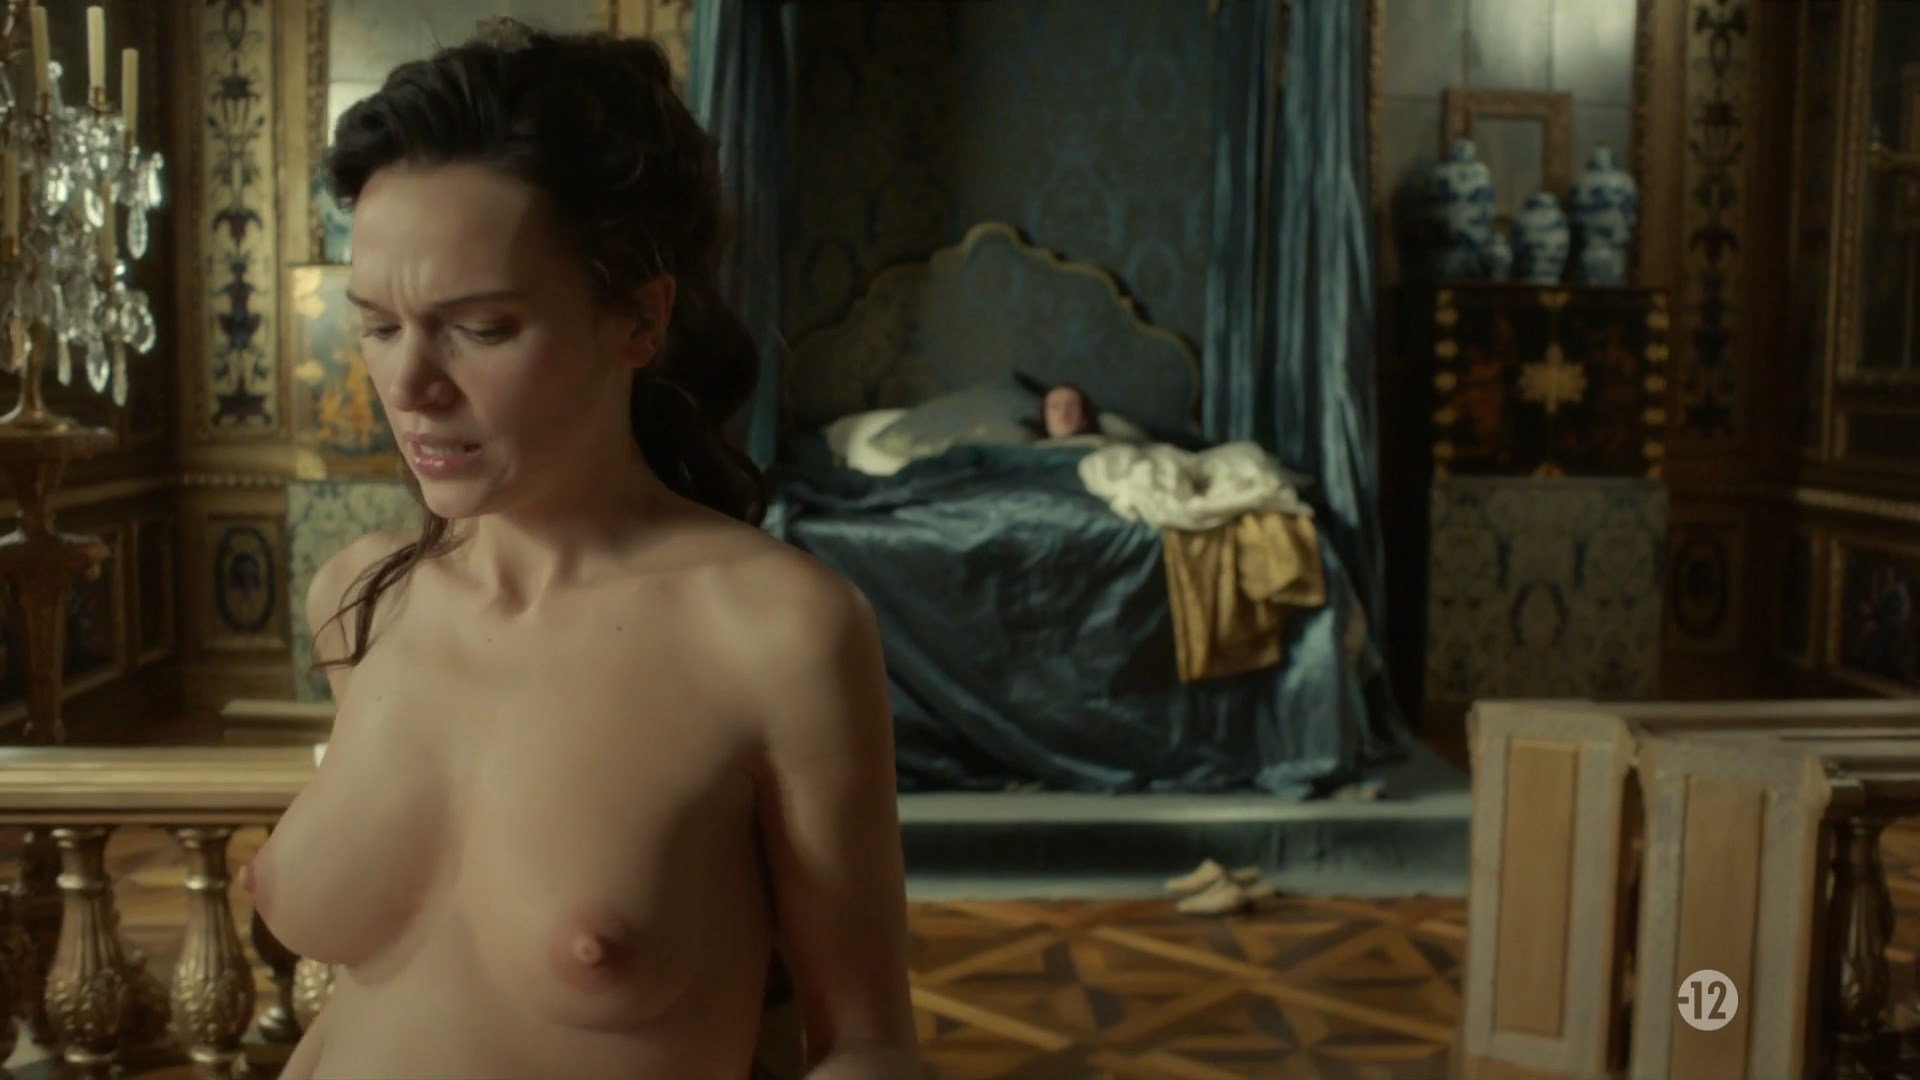 Anna brewster full frontal nudes (26 pics)